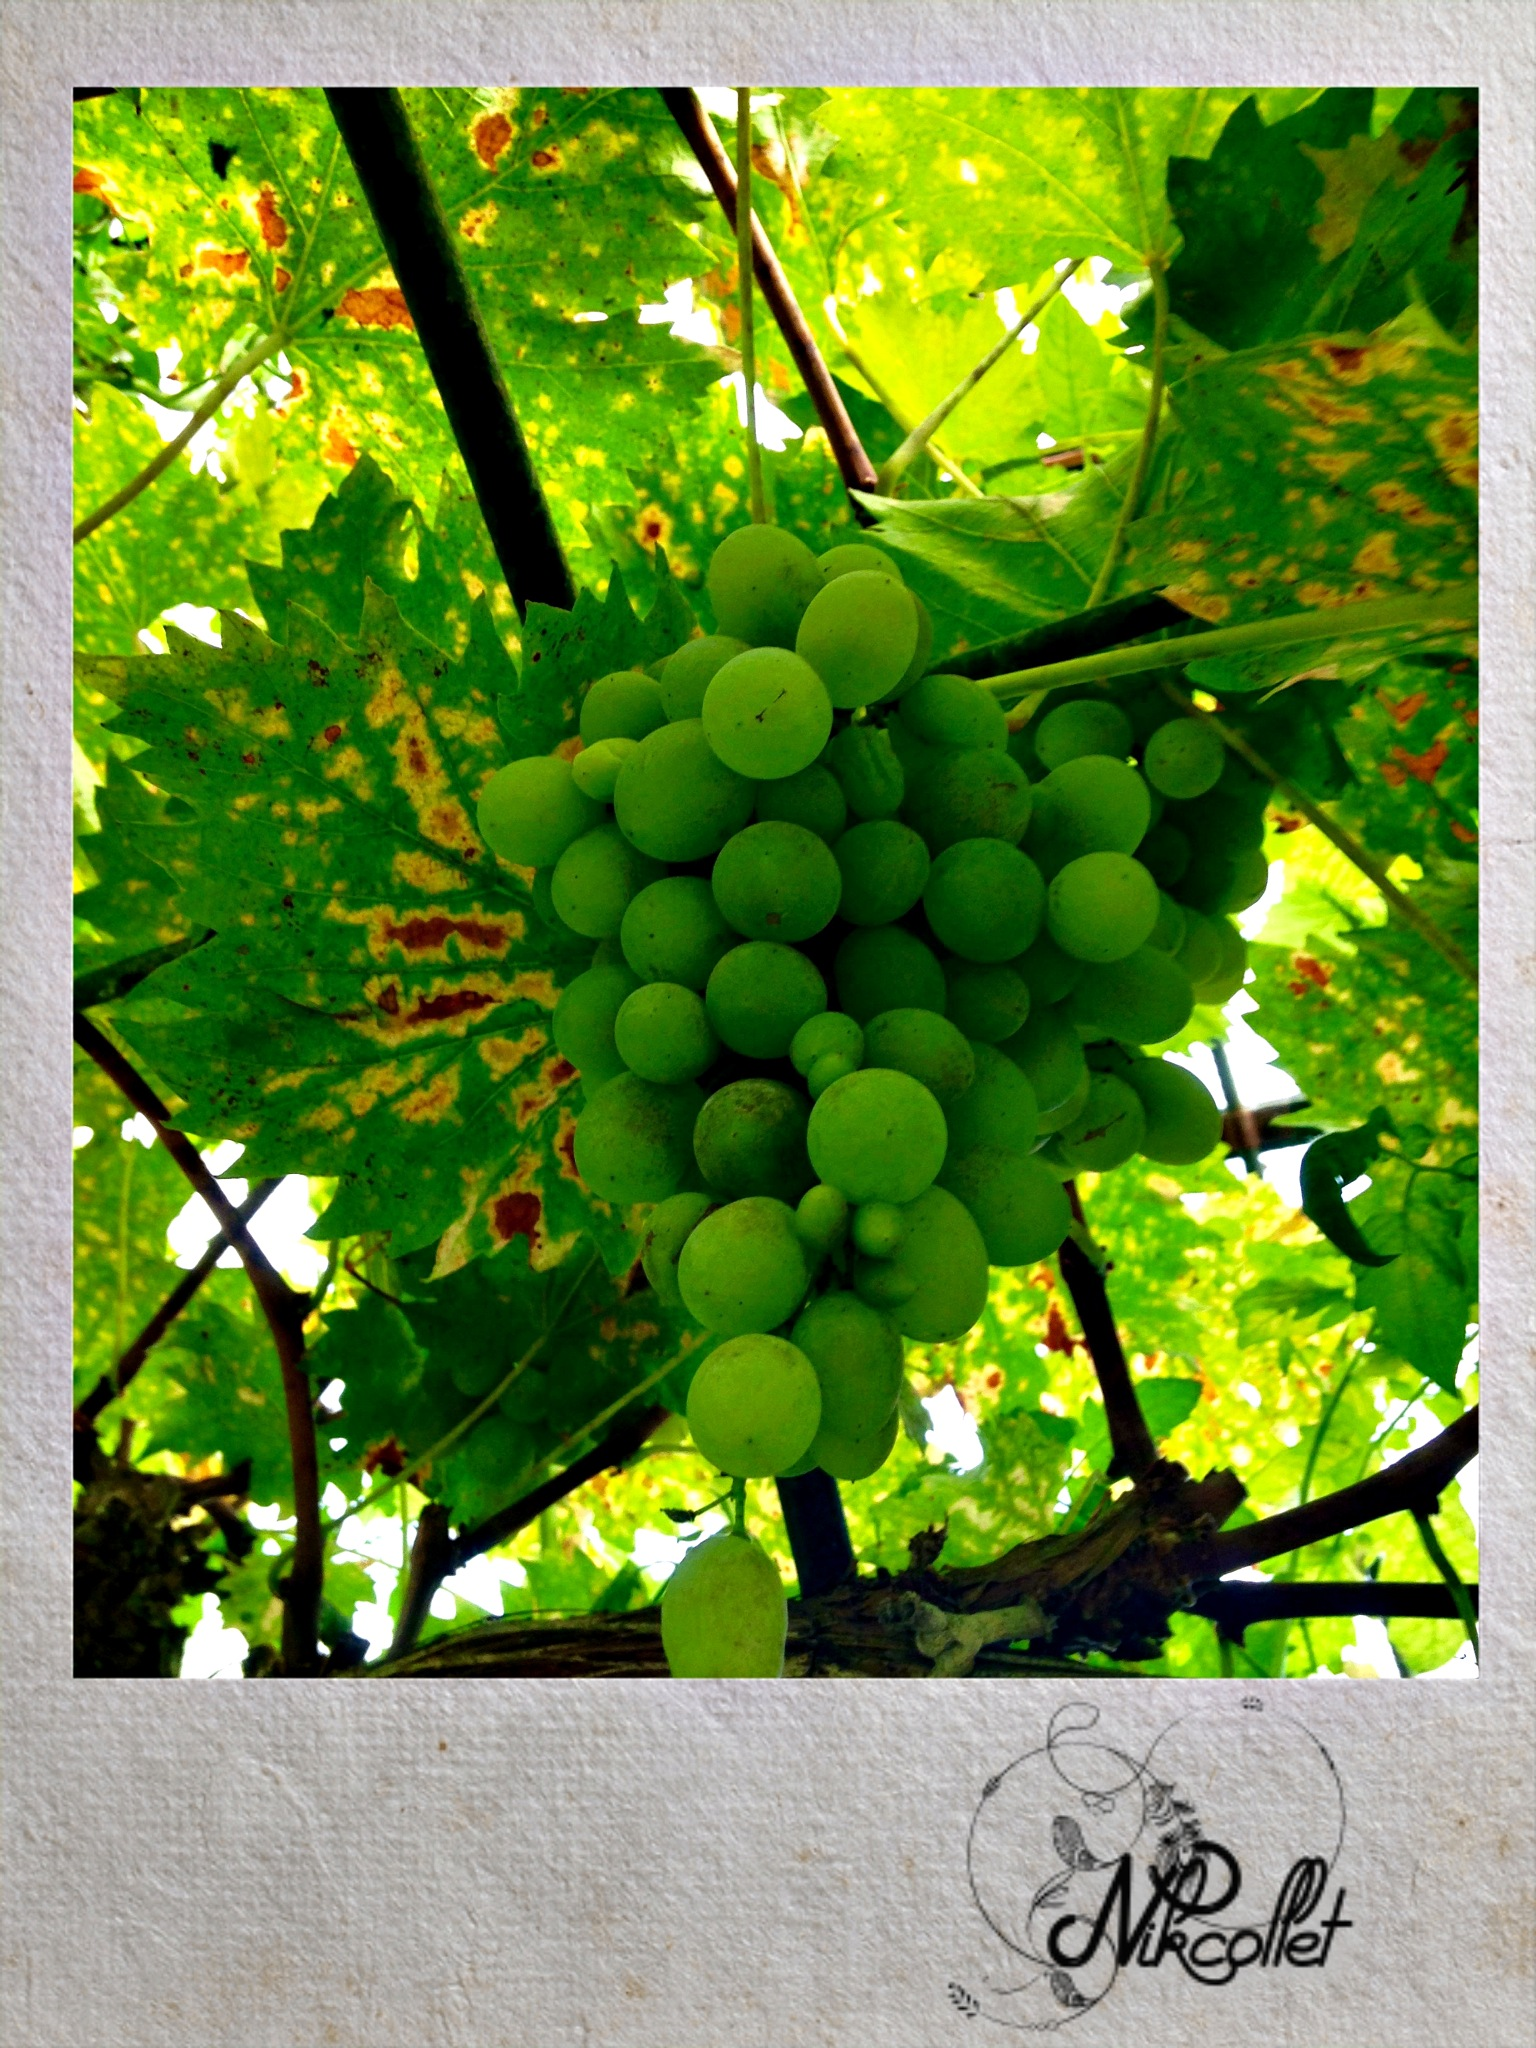 Green grapes by Nikcollet C